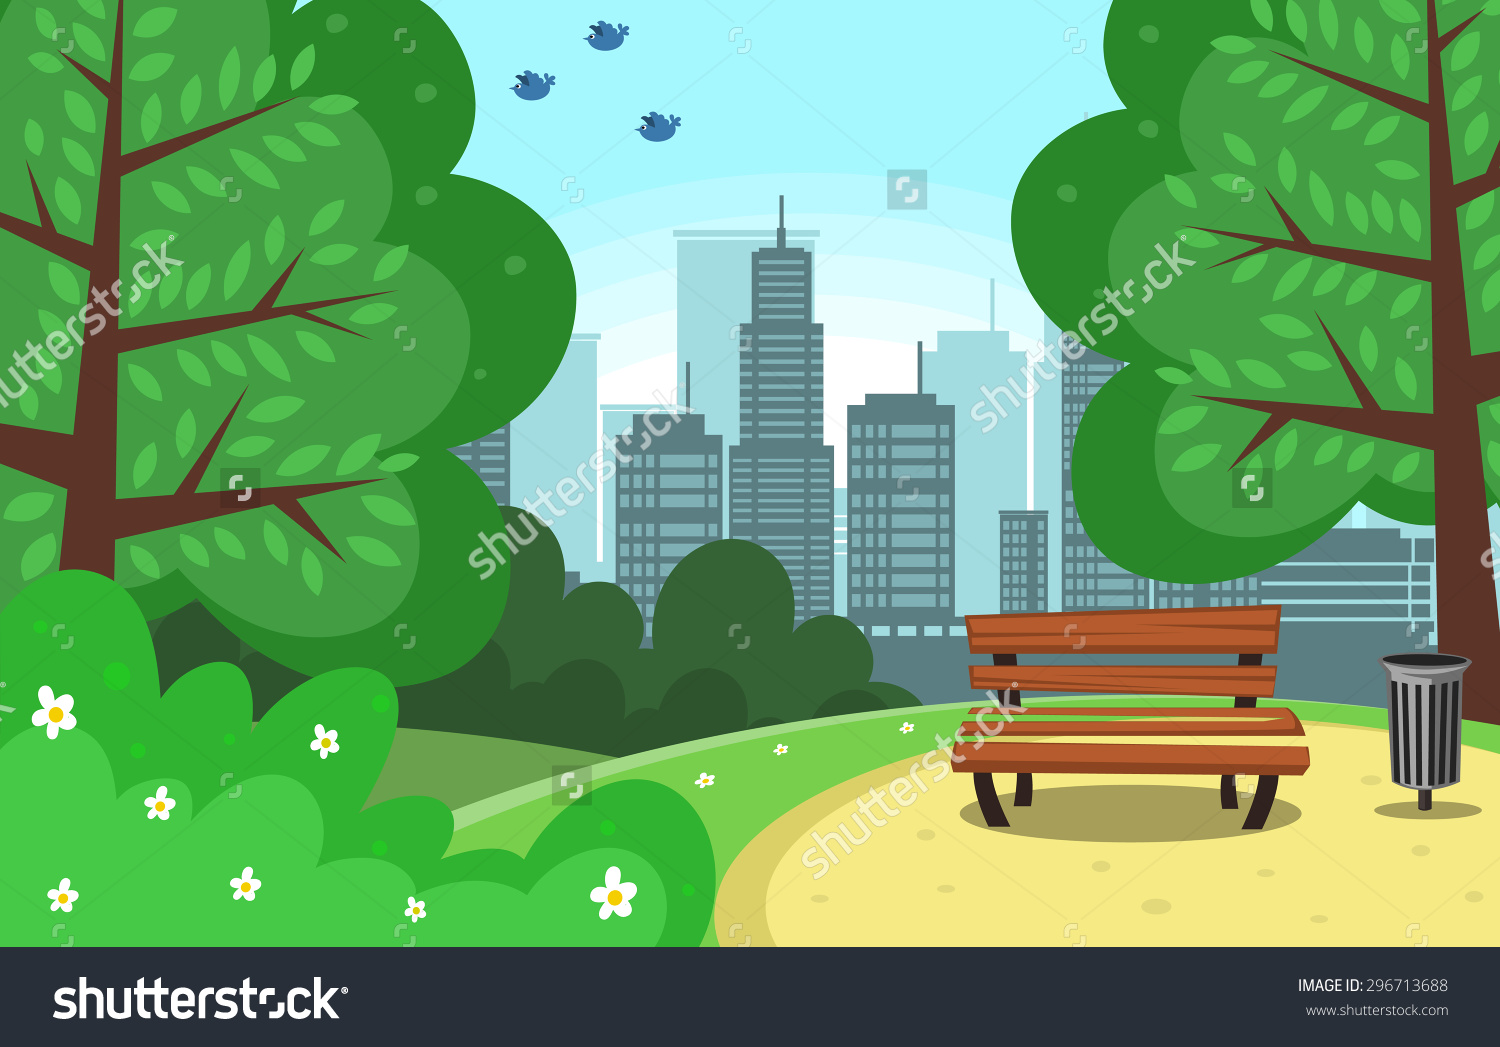 Vector Chair Trash Can Green Park Stock Vector 296713688.